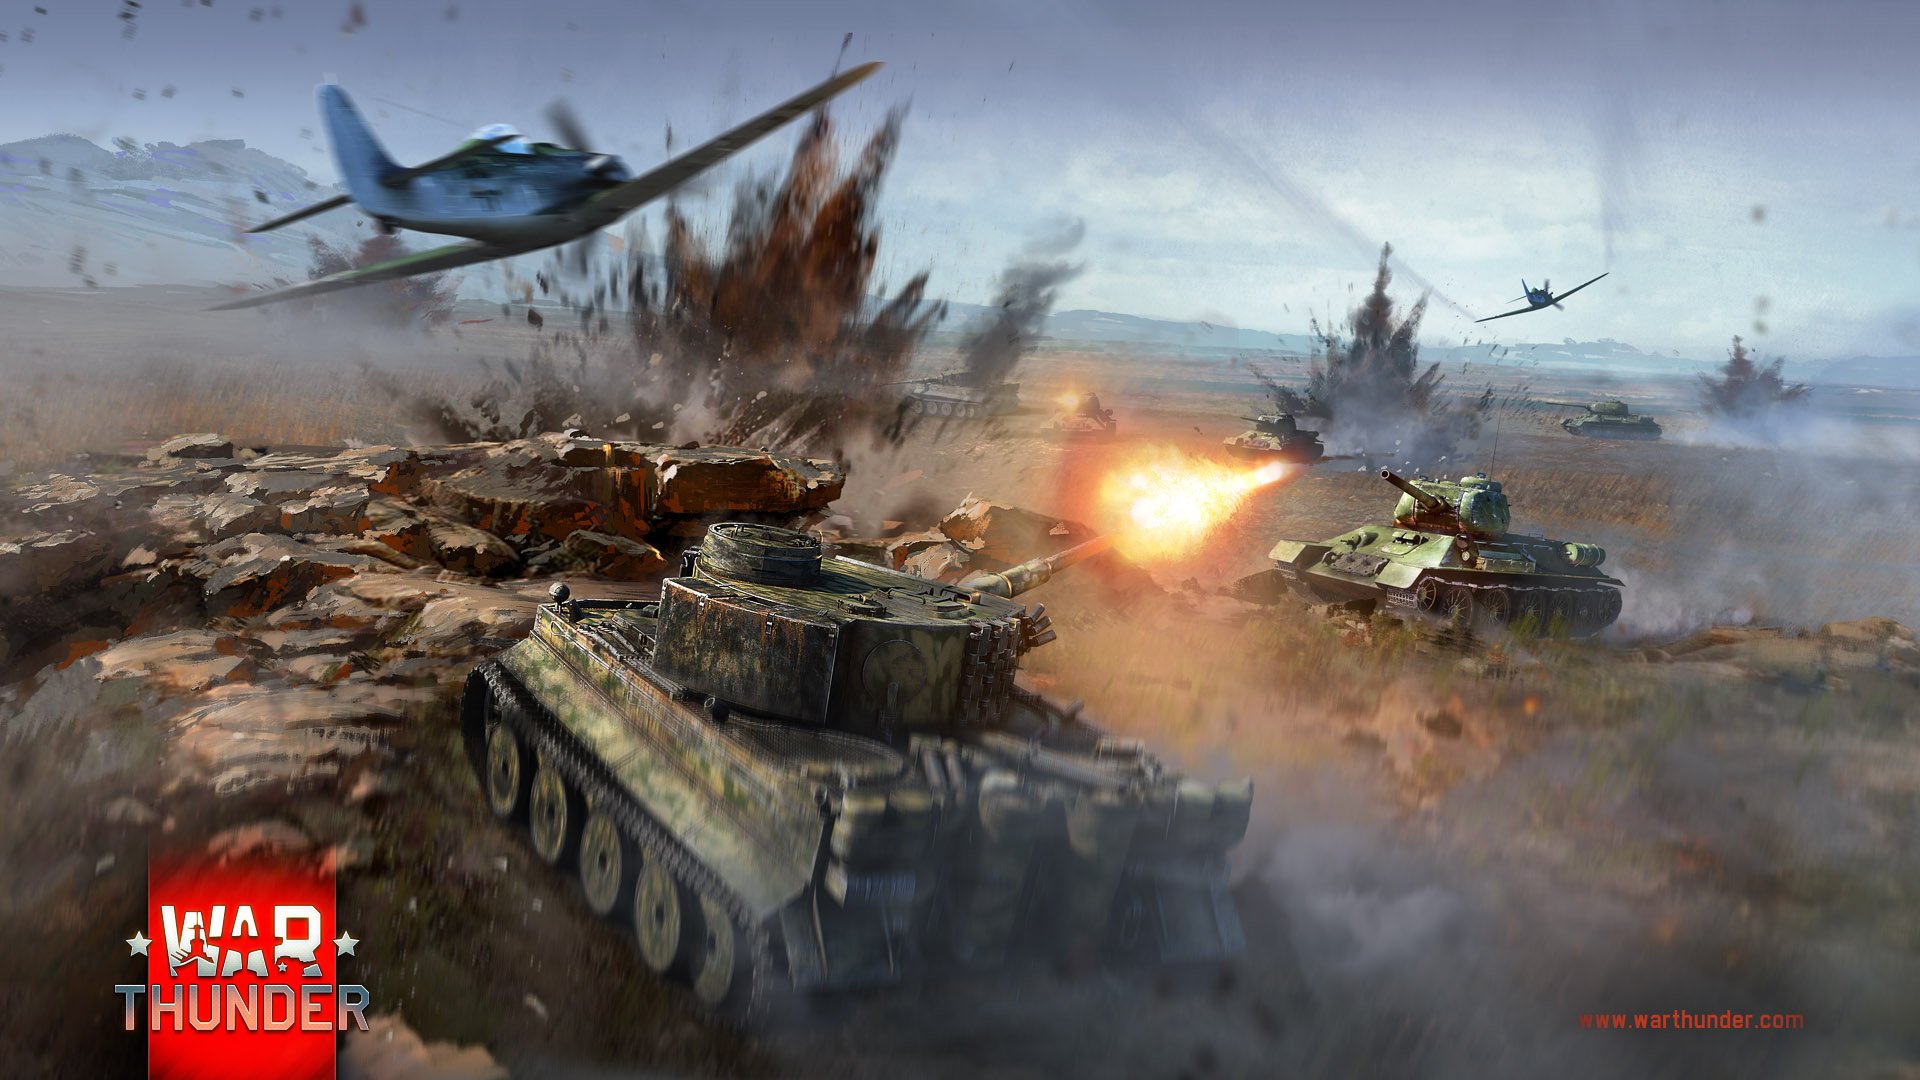 War thunder ground forces subete - Best war wallpapers hd ...